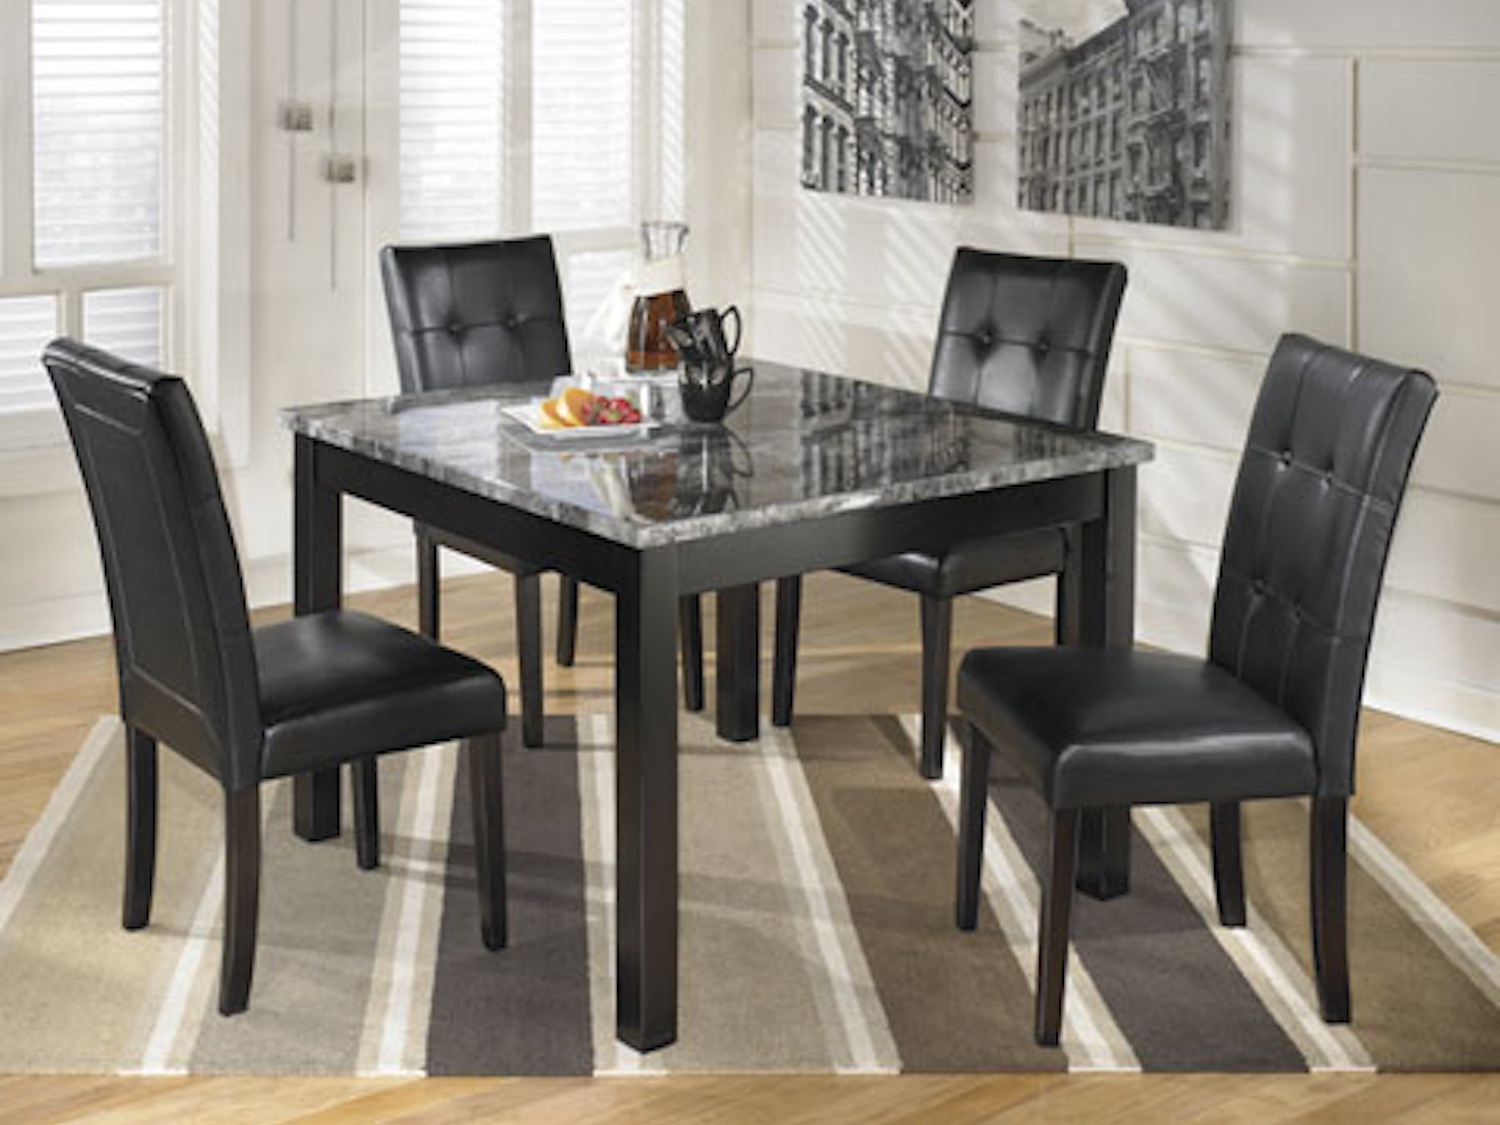 Maysville 5 PC Square Counter TBL Set, D154-223, Dining Room Sets, Maysville 5 PC Square Counter TBL Set from Ashley by Midha Furniture serving Brampton, Mississauga, Etobicoke, Toronto, Scraborough, Caledon, Cambridge, Oakville, Markham, Ajax, Pickering, Oshawa, Richmondhill, Kitchener, Hamilton, Cambridge, Waterloo and GTA area